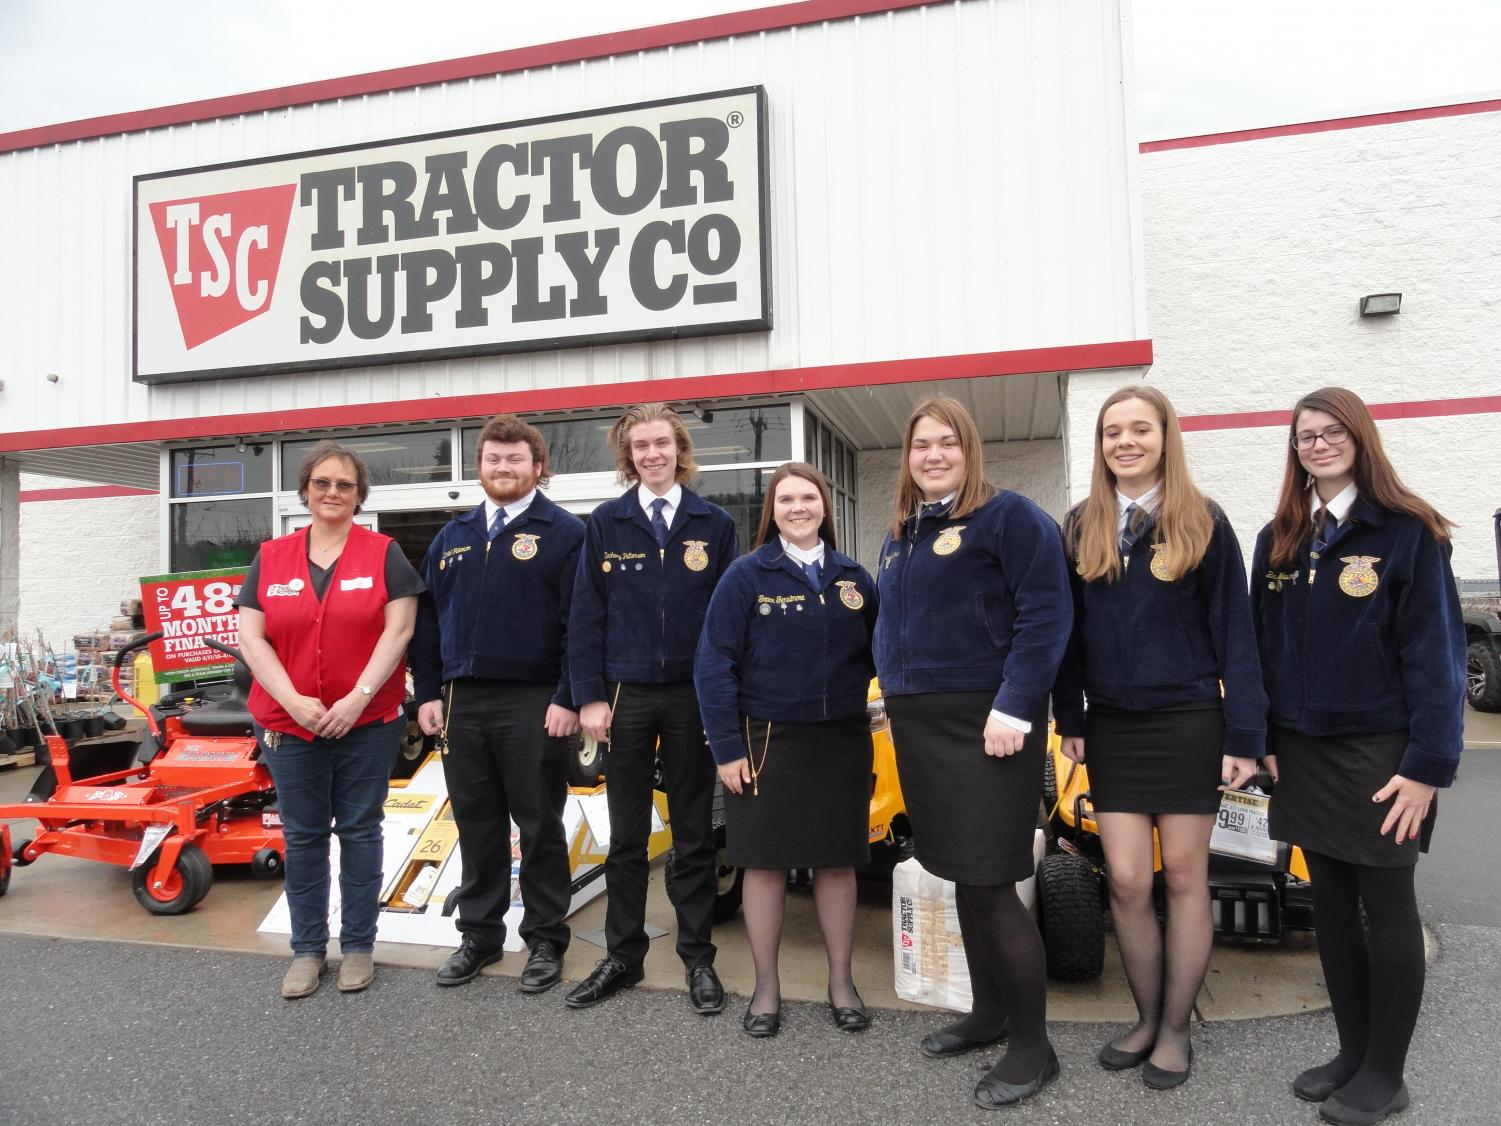 FFA students received a grant from Tractor Supply Company